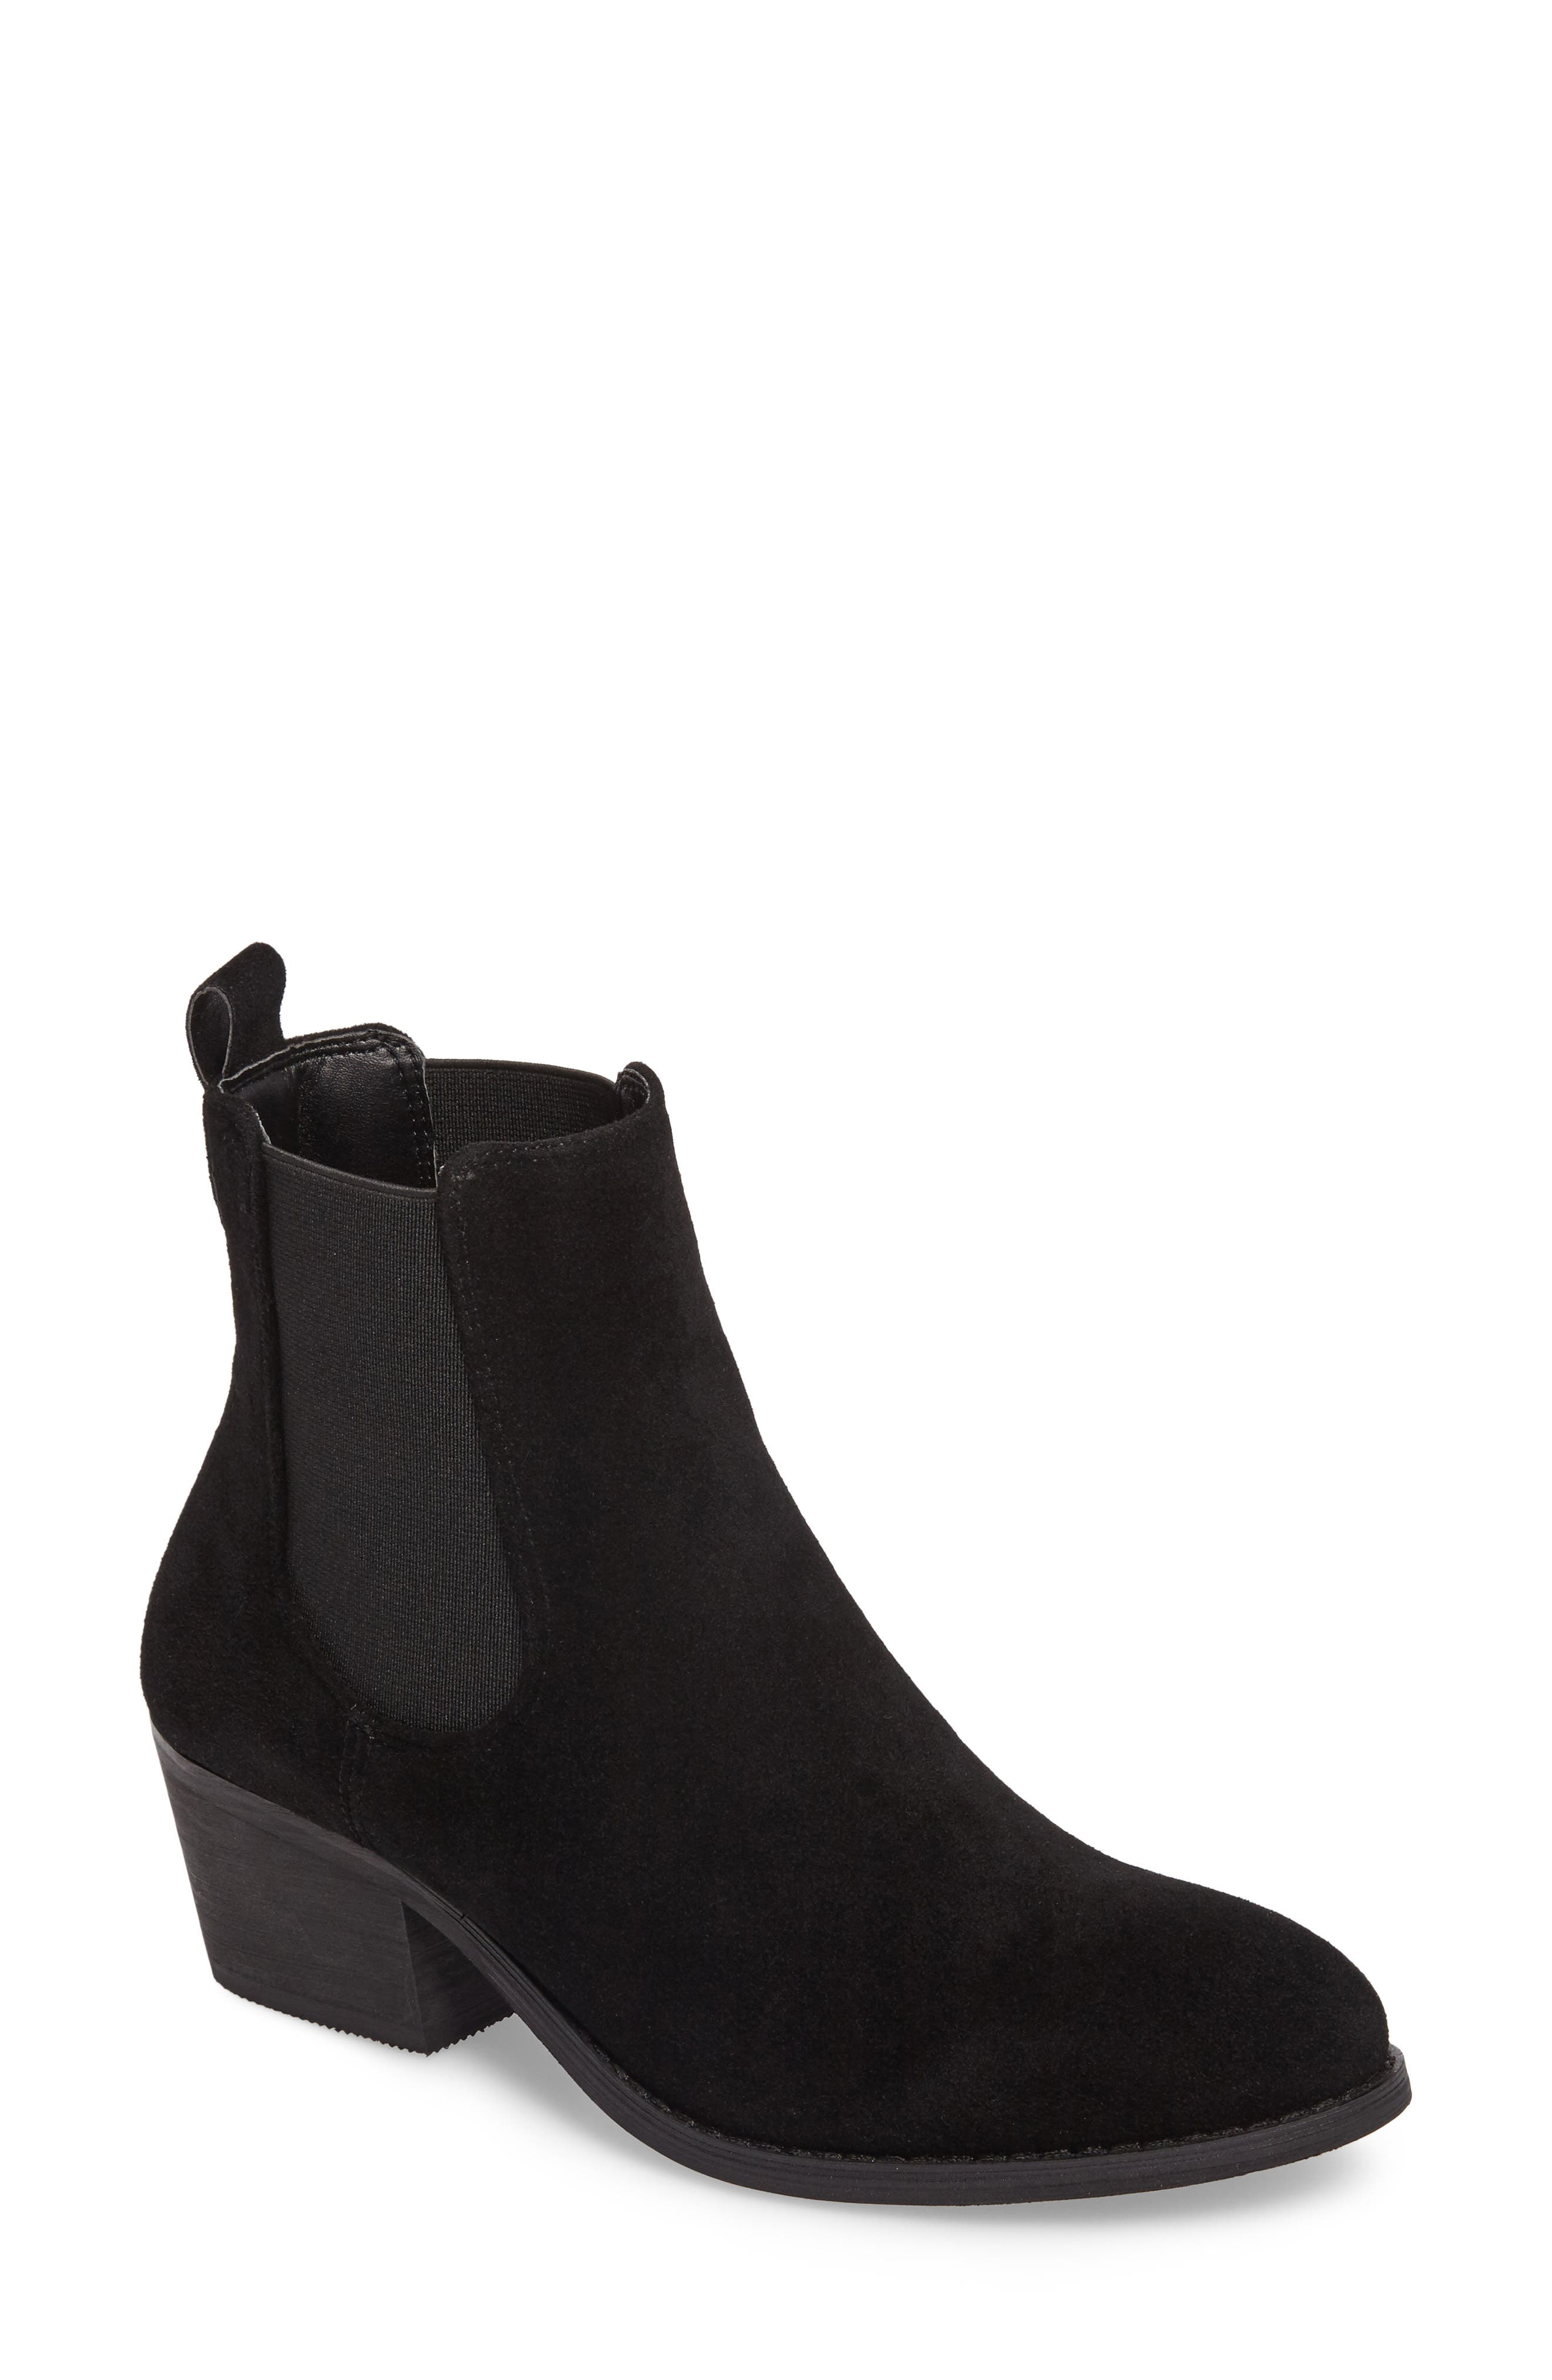 Ammore Chelsea Boot,                             Main thumbnail 1, color,                             Black Suede